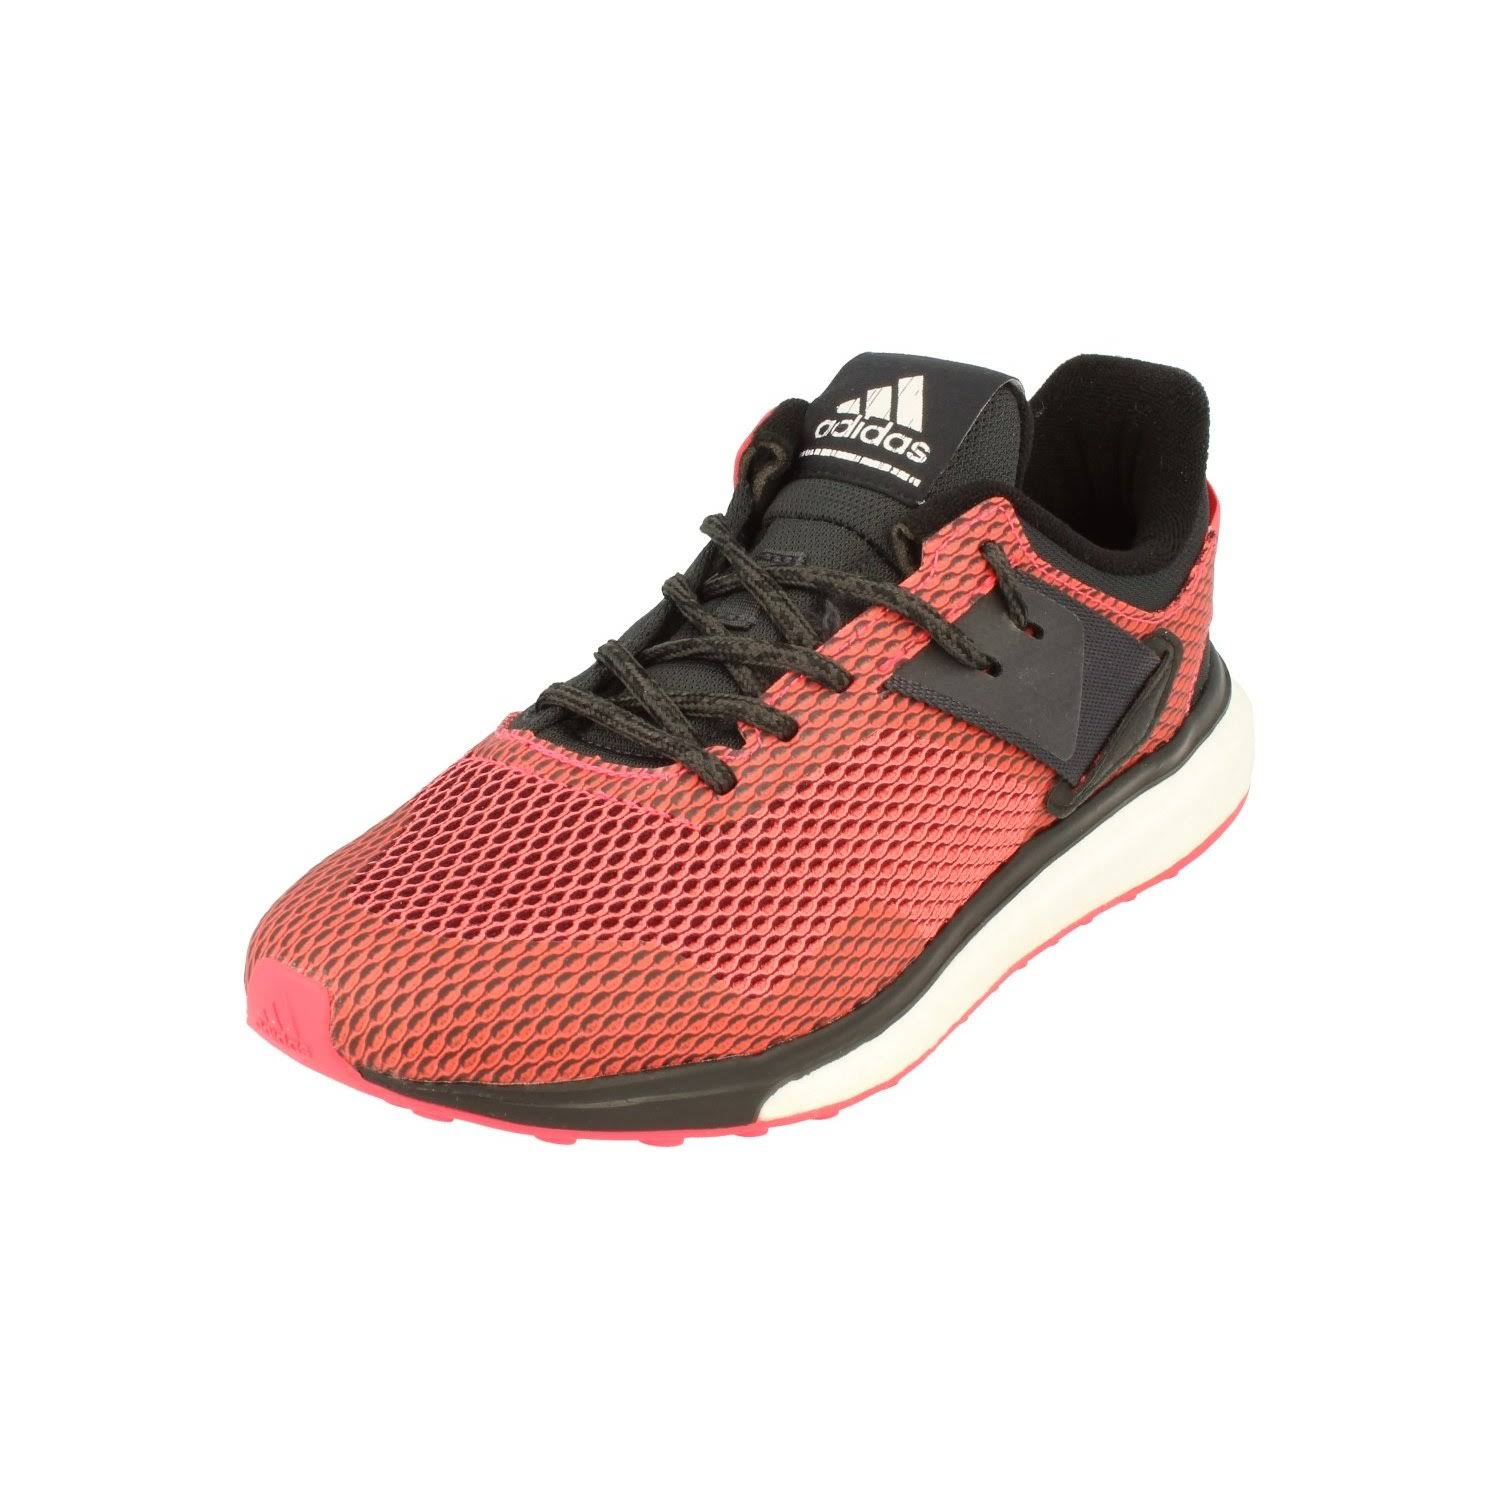 (7) Adidas Response 3 Boost Womens Running Trainers Sneakers